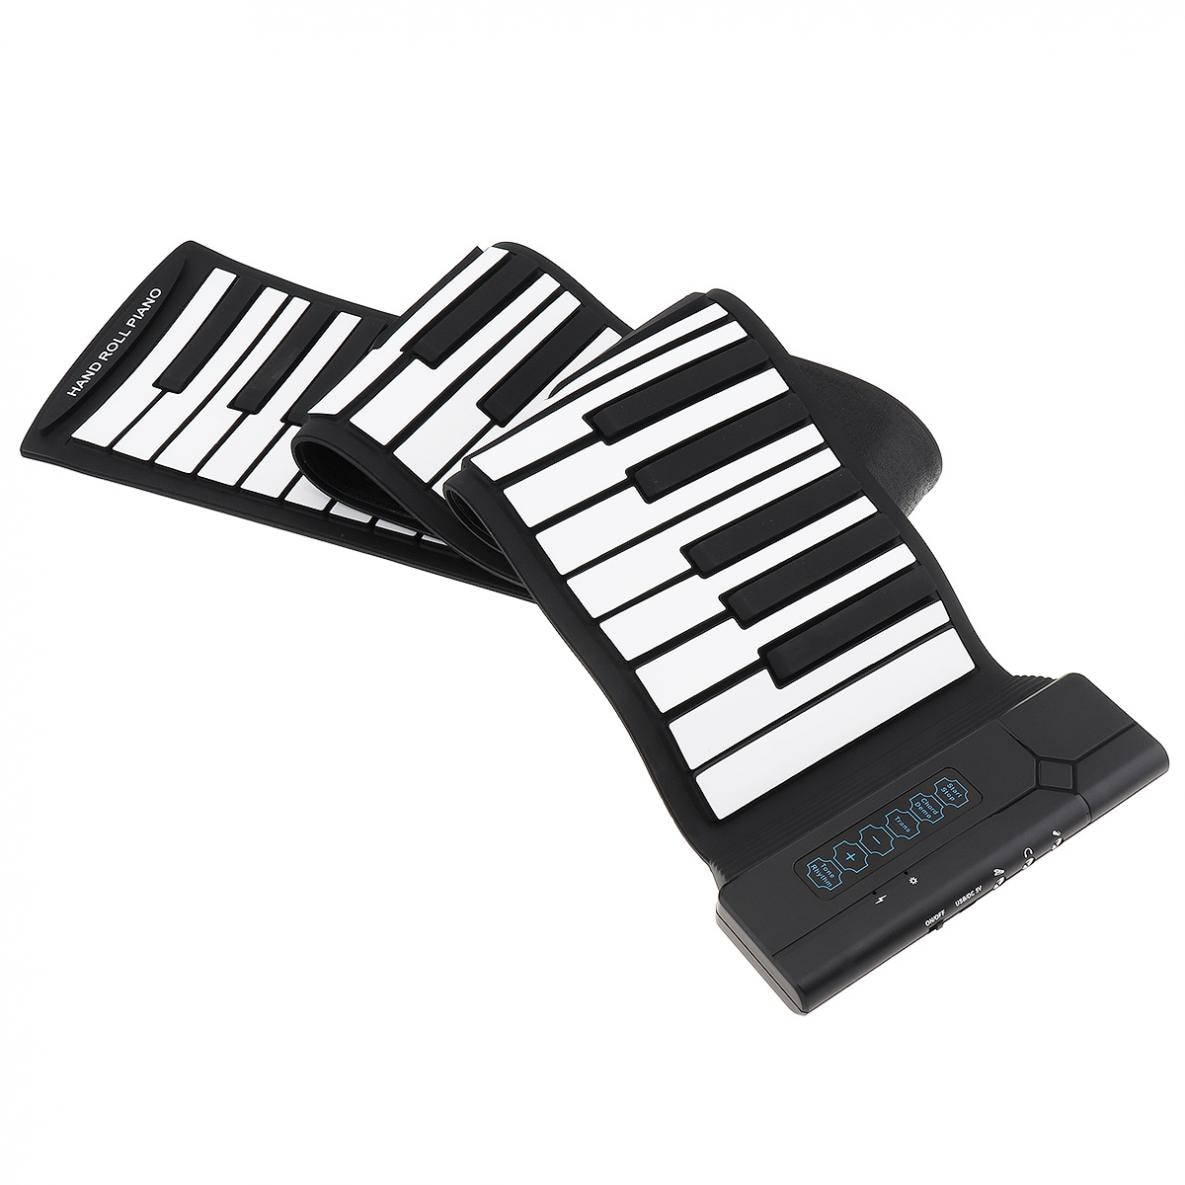 88 Keys Roll Up Piano USB MIDI Output Rechargeable Electronic Portable Silicone Flexible Keyboards Organ with Sustain Pedal enlarge